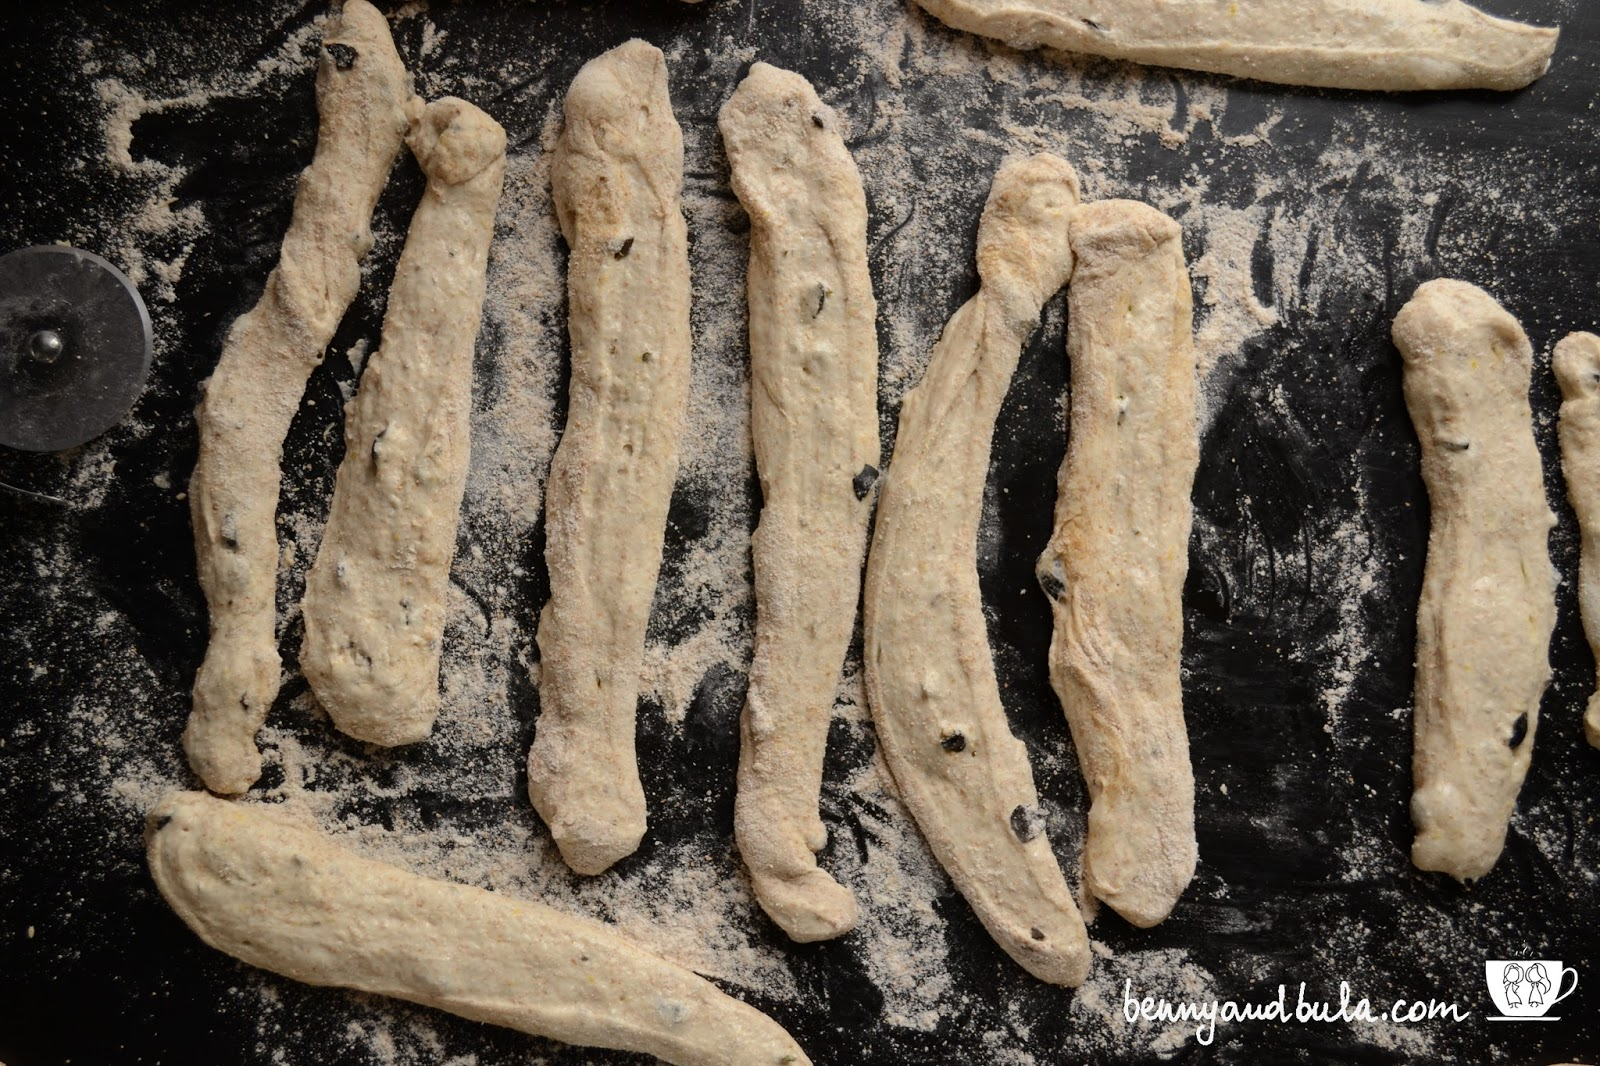 pieghe impasto grissini di pane olio d'oliva/olive oil breadsticks step by step from scratch